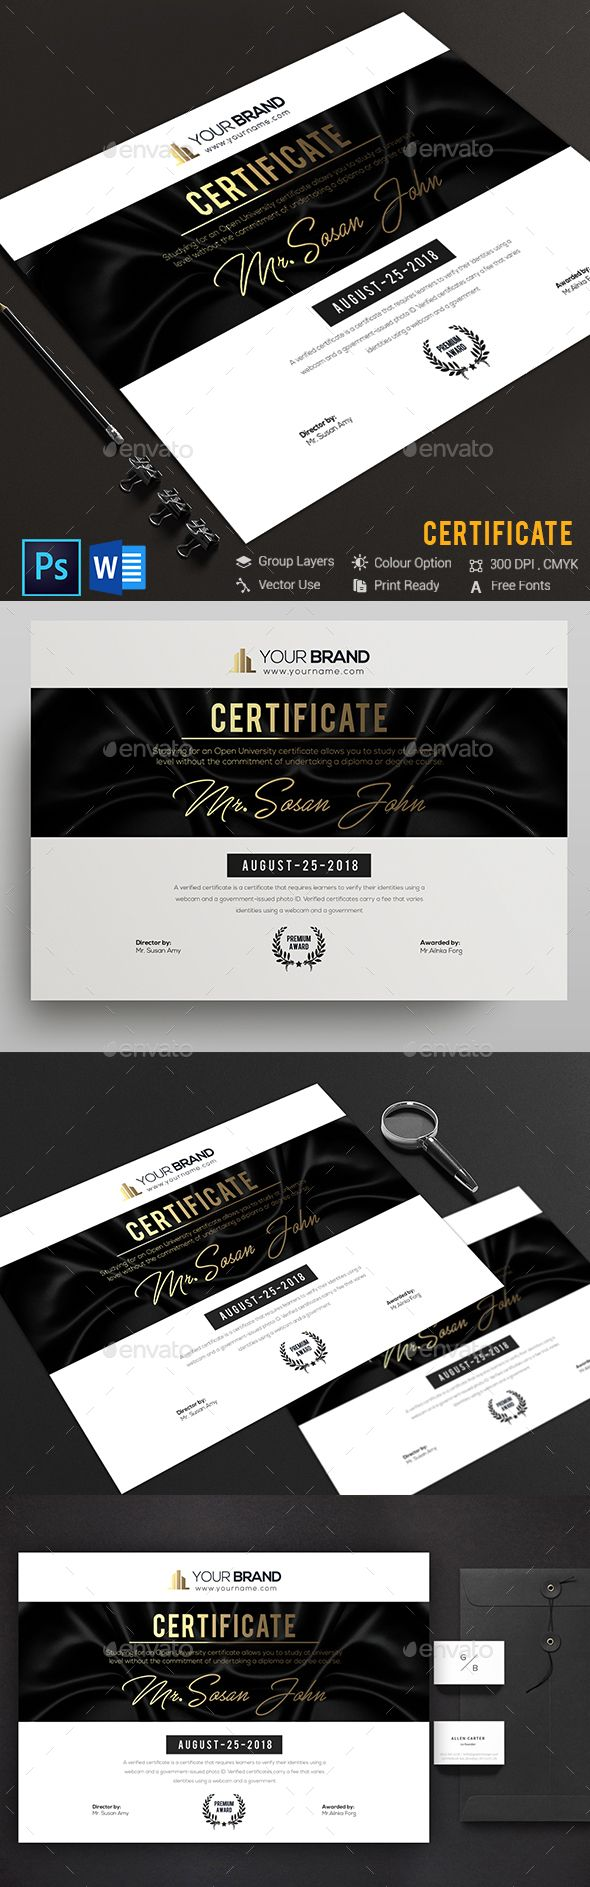 Certificate #certificate #certificate design  • Download here → https://graphicriver.net/item/certificate/20537199?ref=pxcr